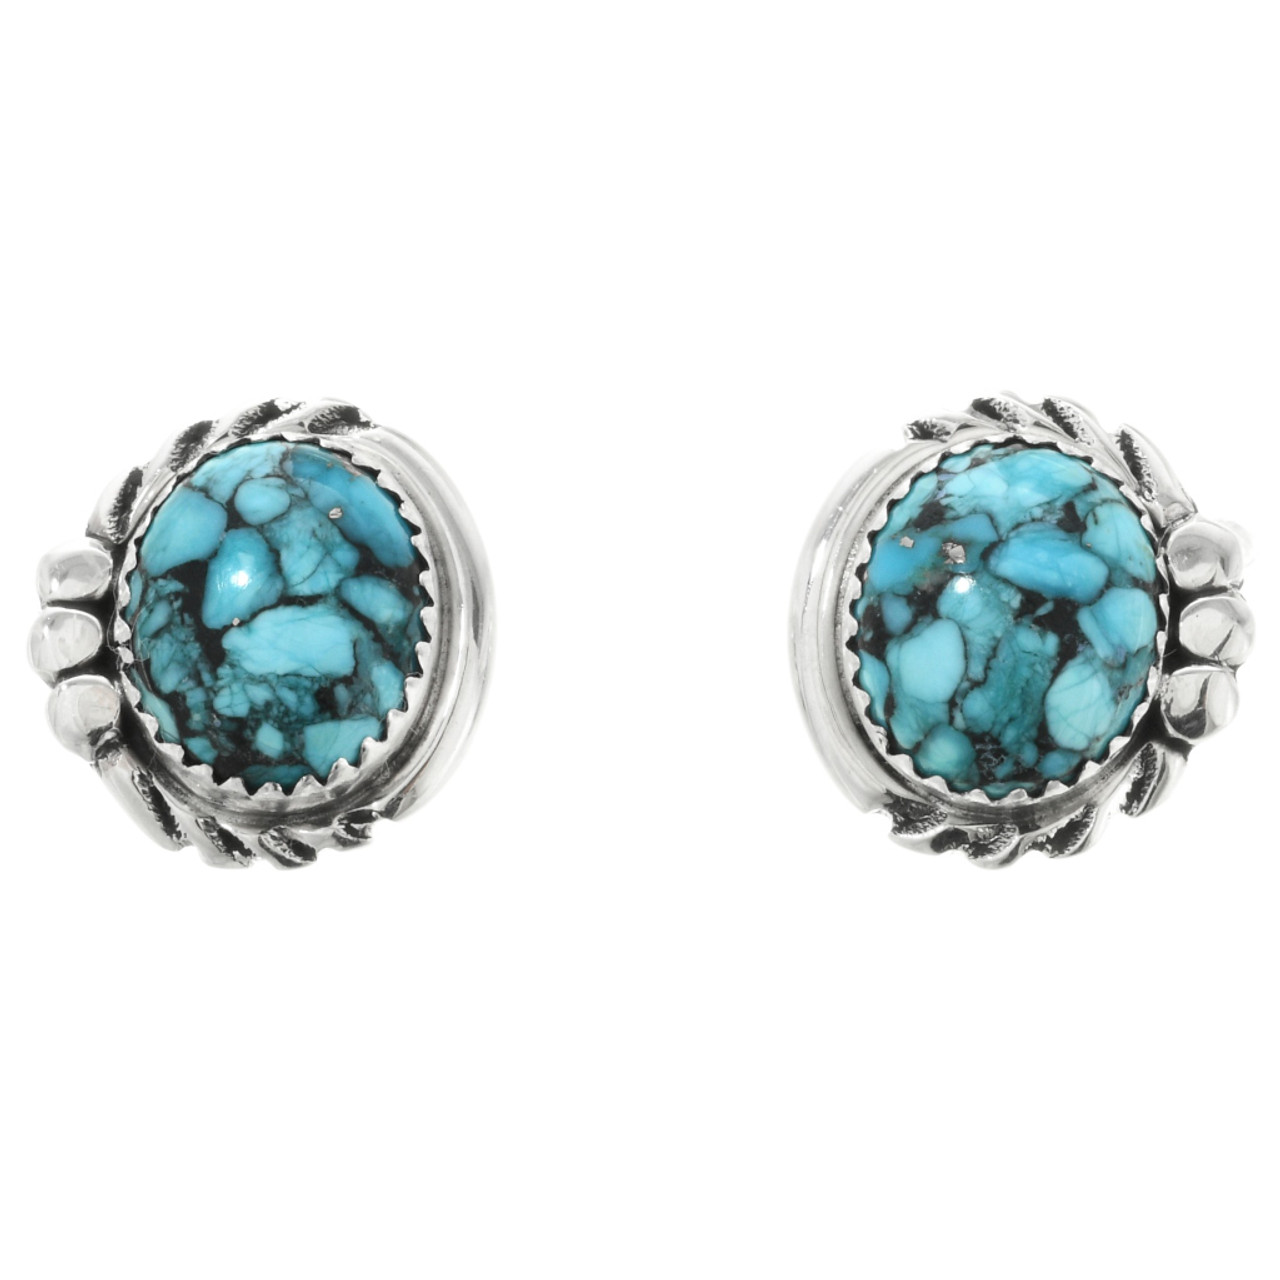 9bea4cc59 Spiderweb Turquoise Silver Post Earrings 32013